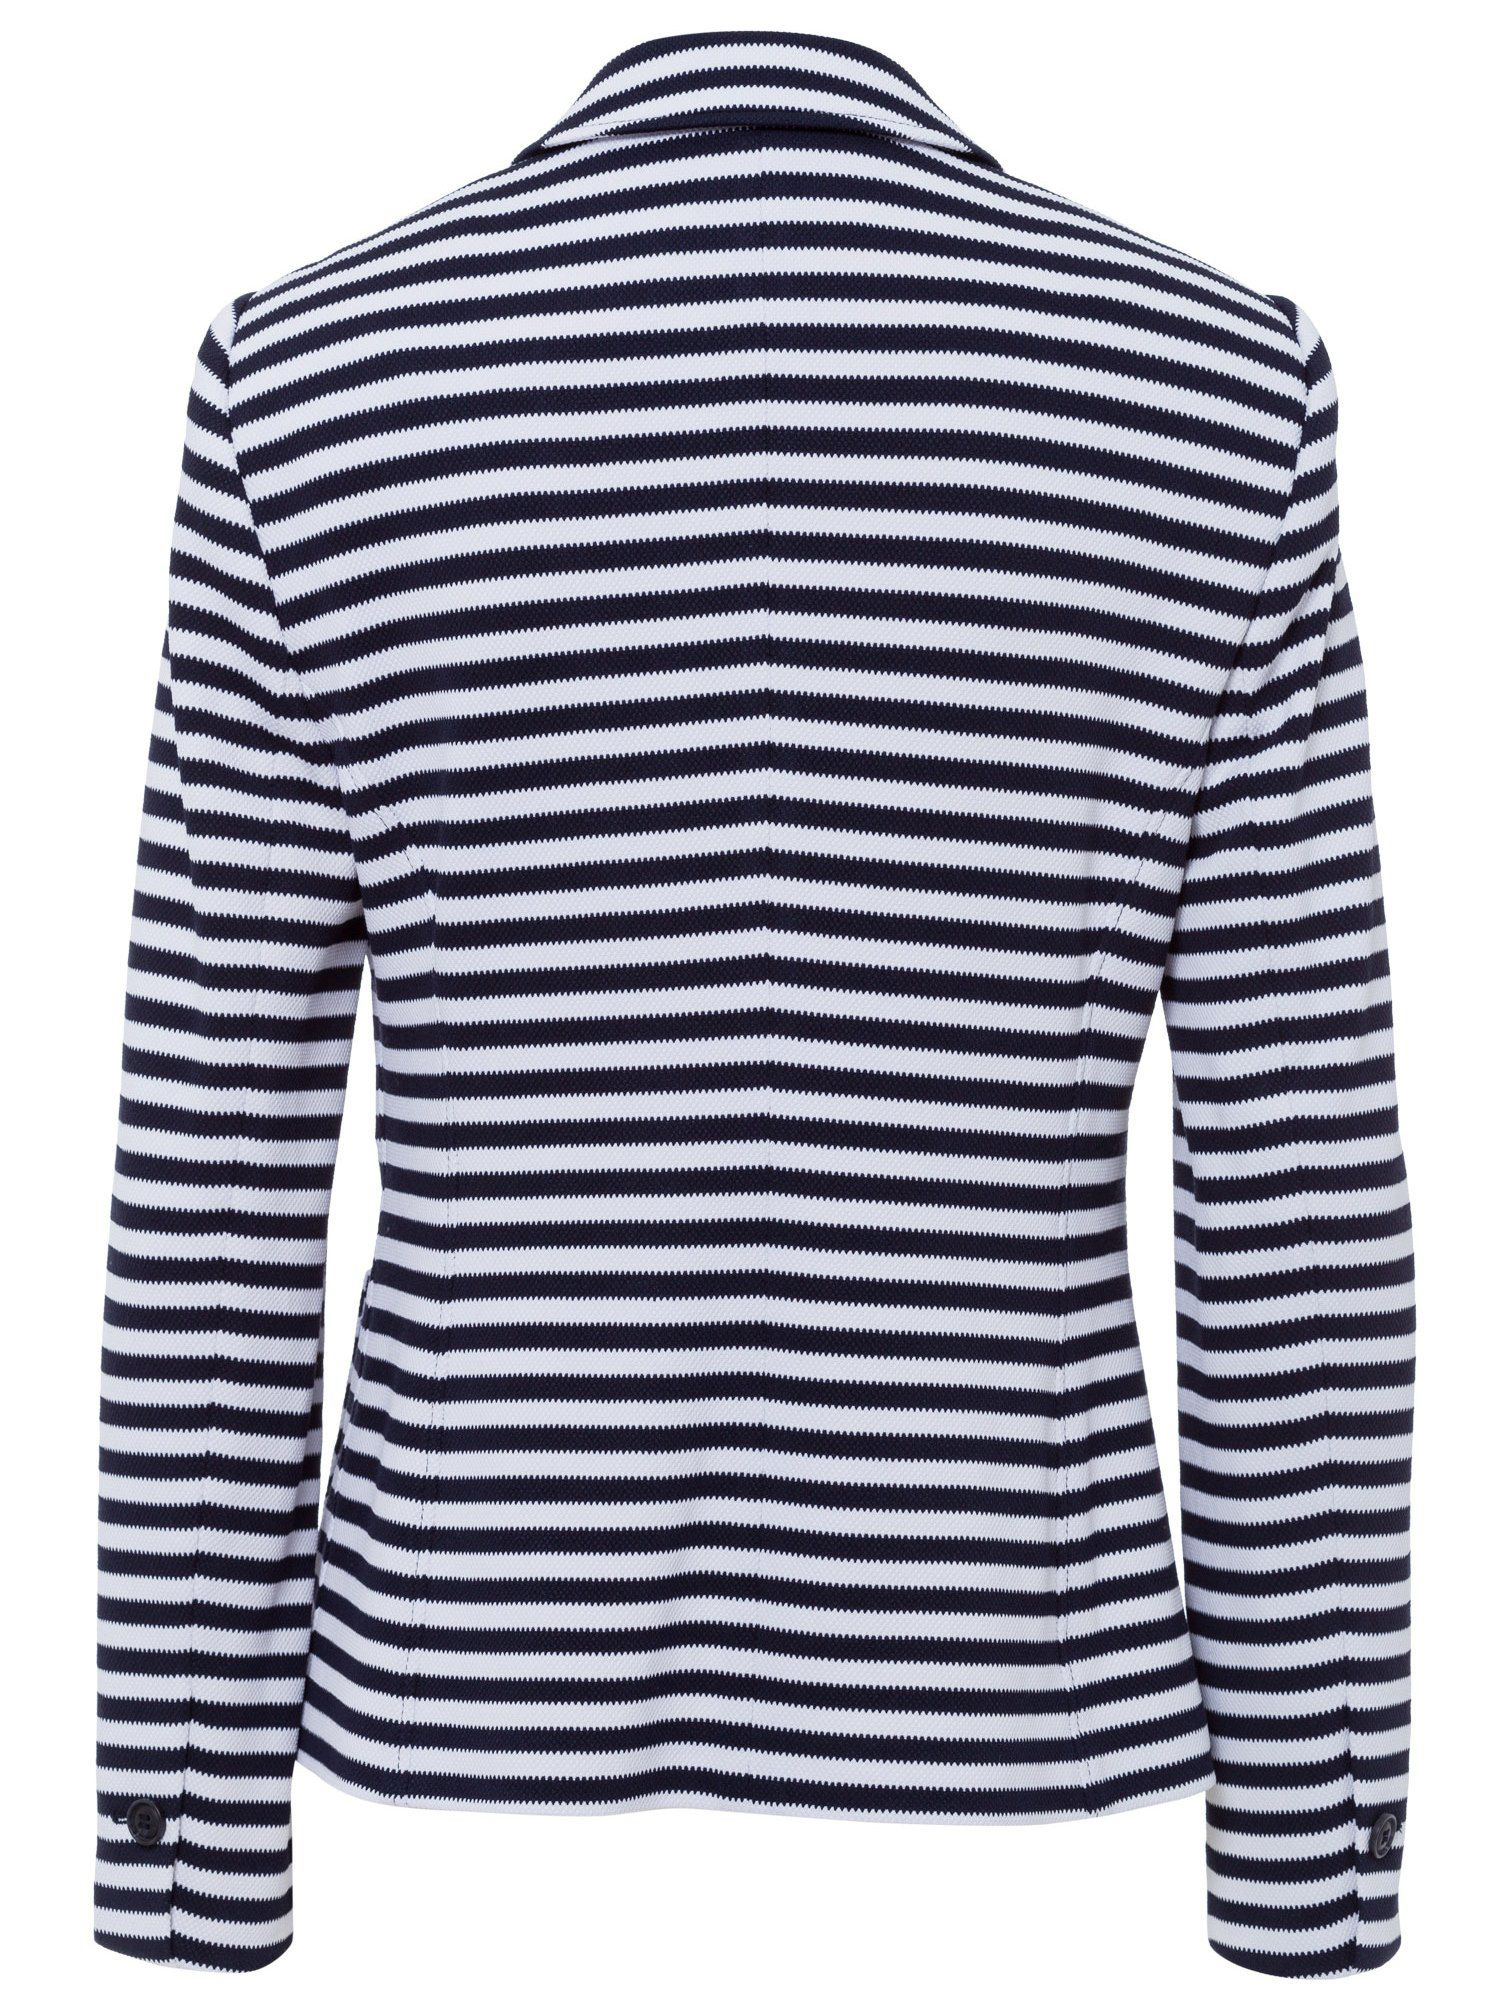 Get the best deals on h&m navy striped blazer and save up to 70% off at Poshmark now! Whatever you're shopping for, we've got it.